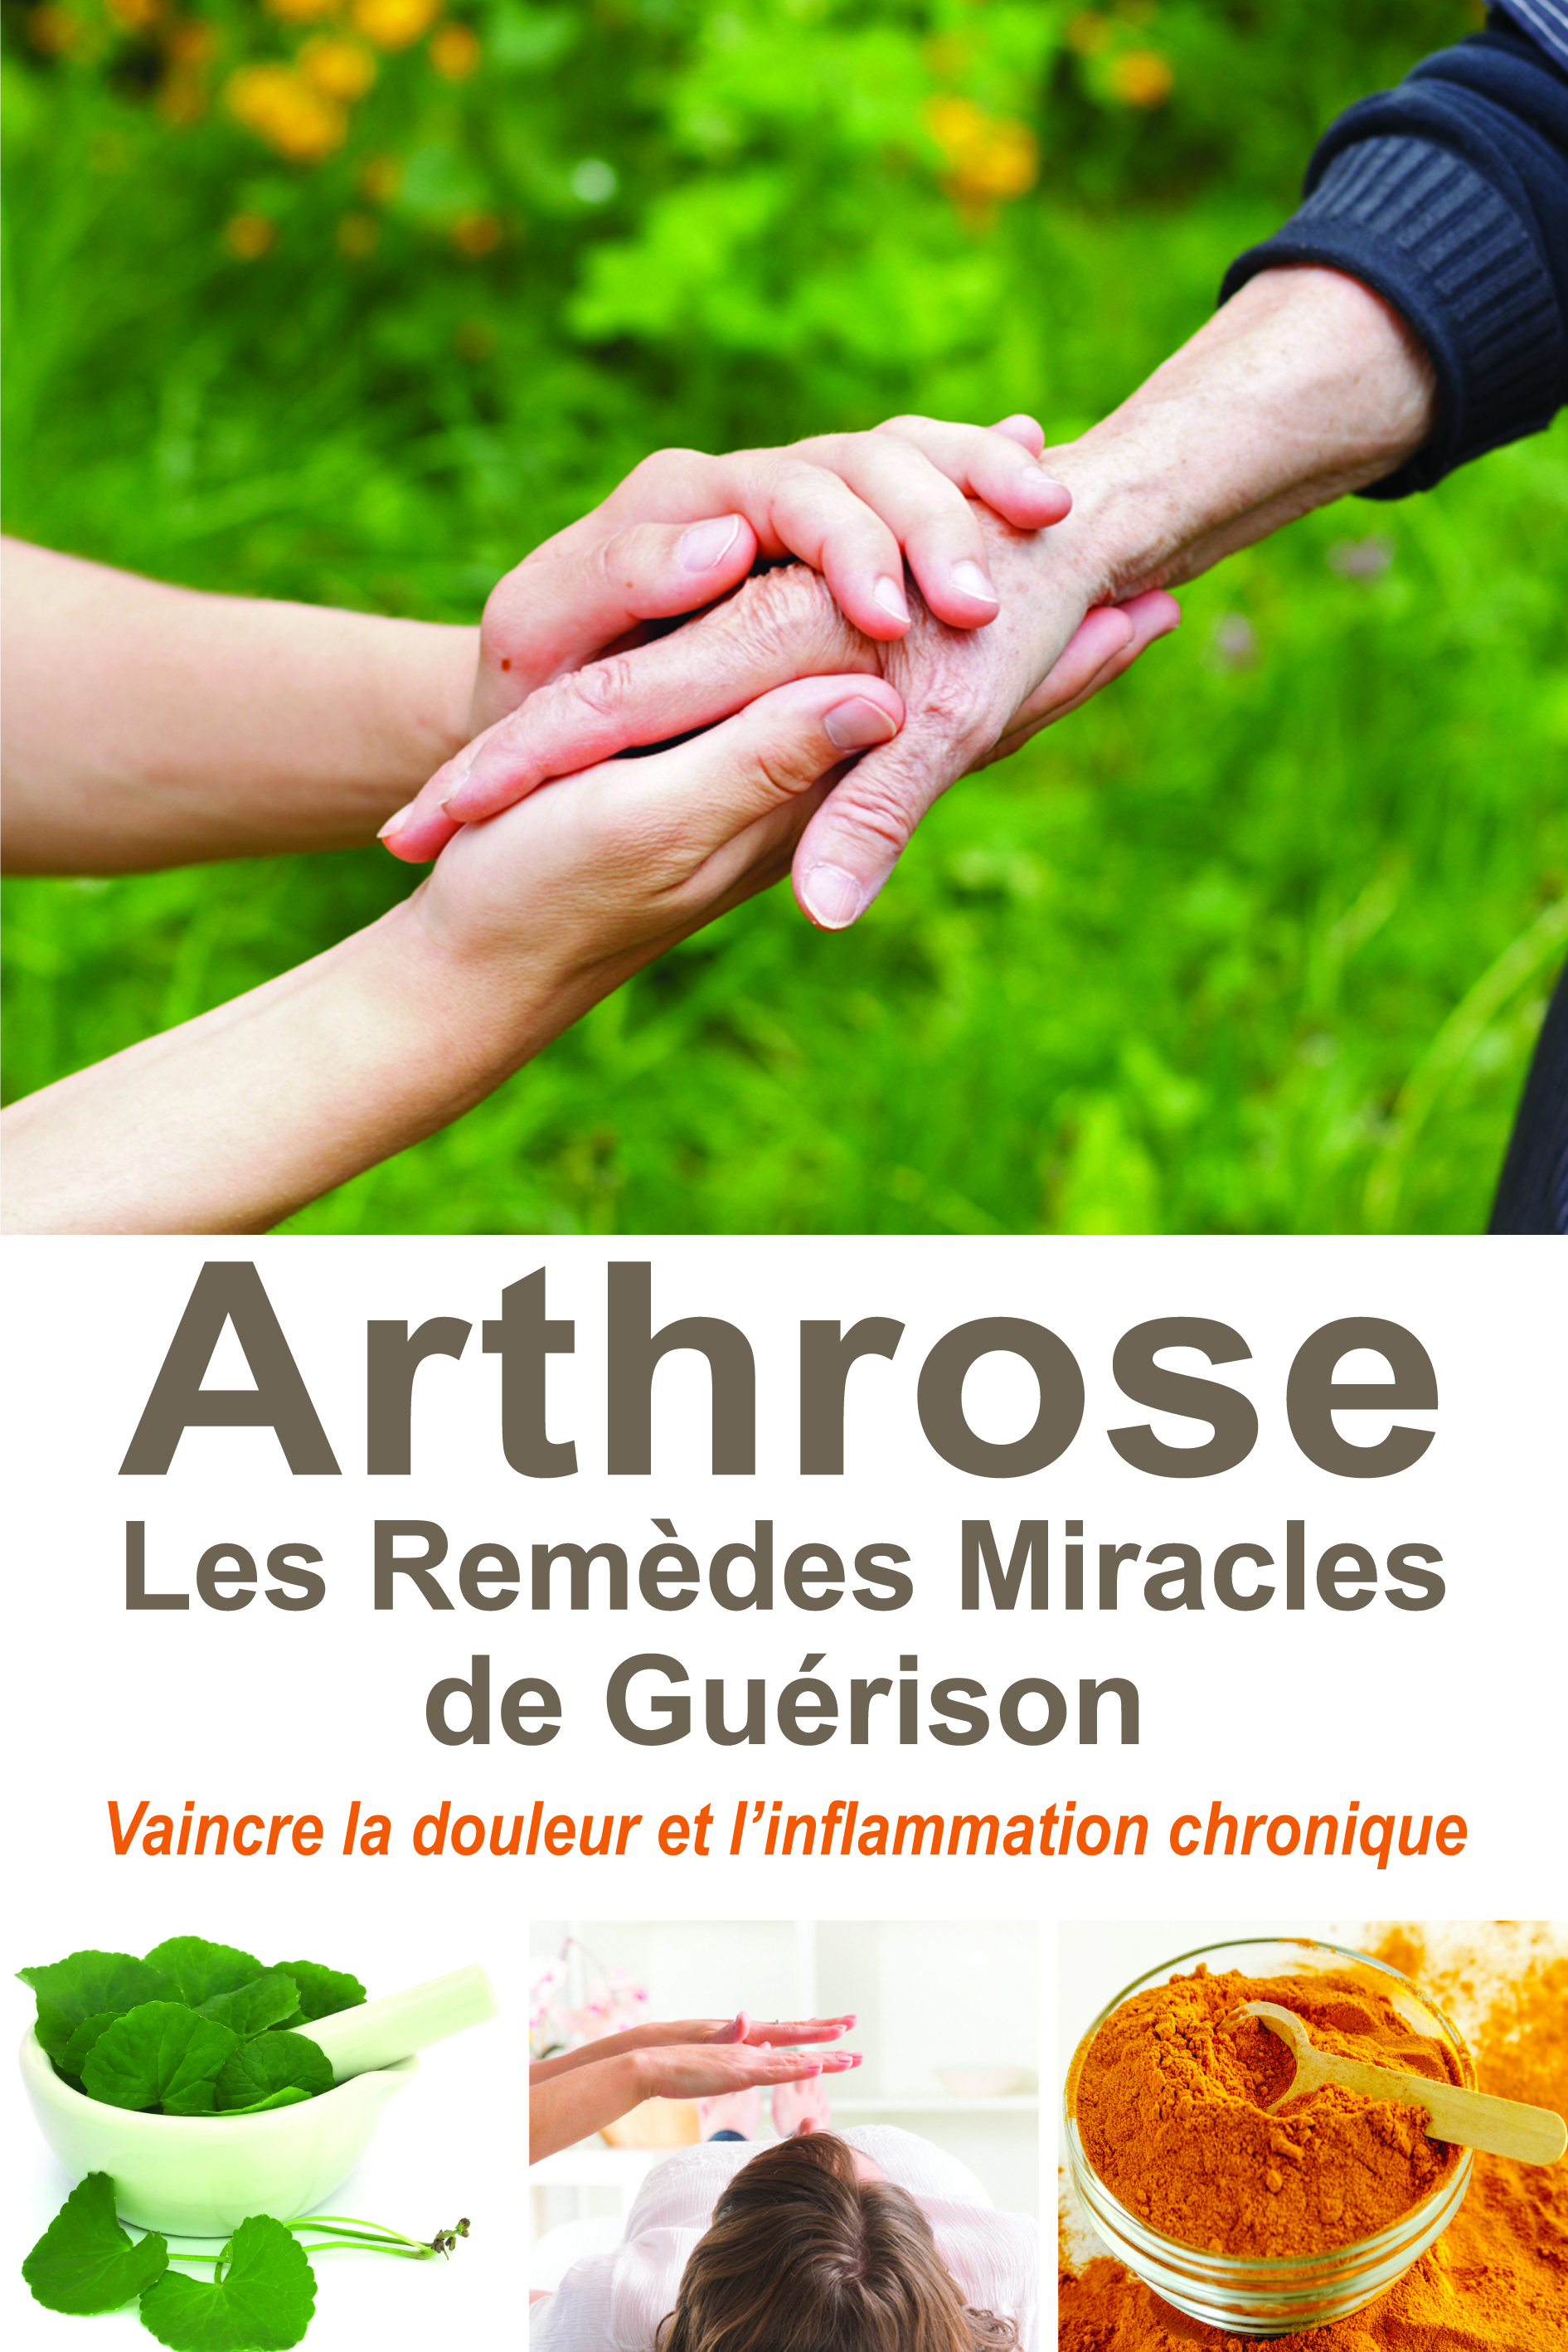 ARTHROSE LES REMEDES MIRACLES DE GUERISON